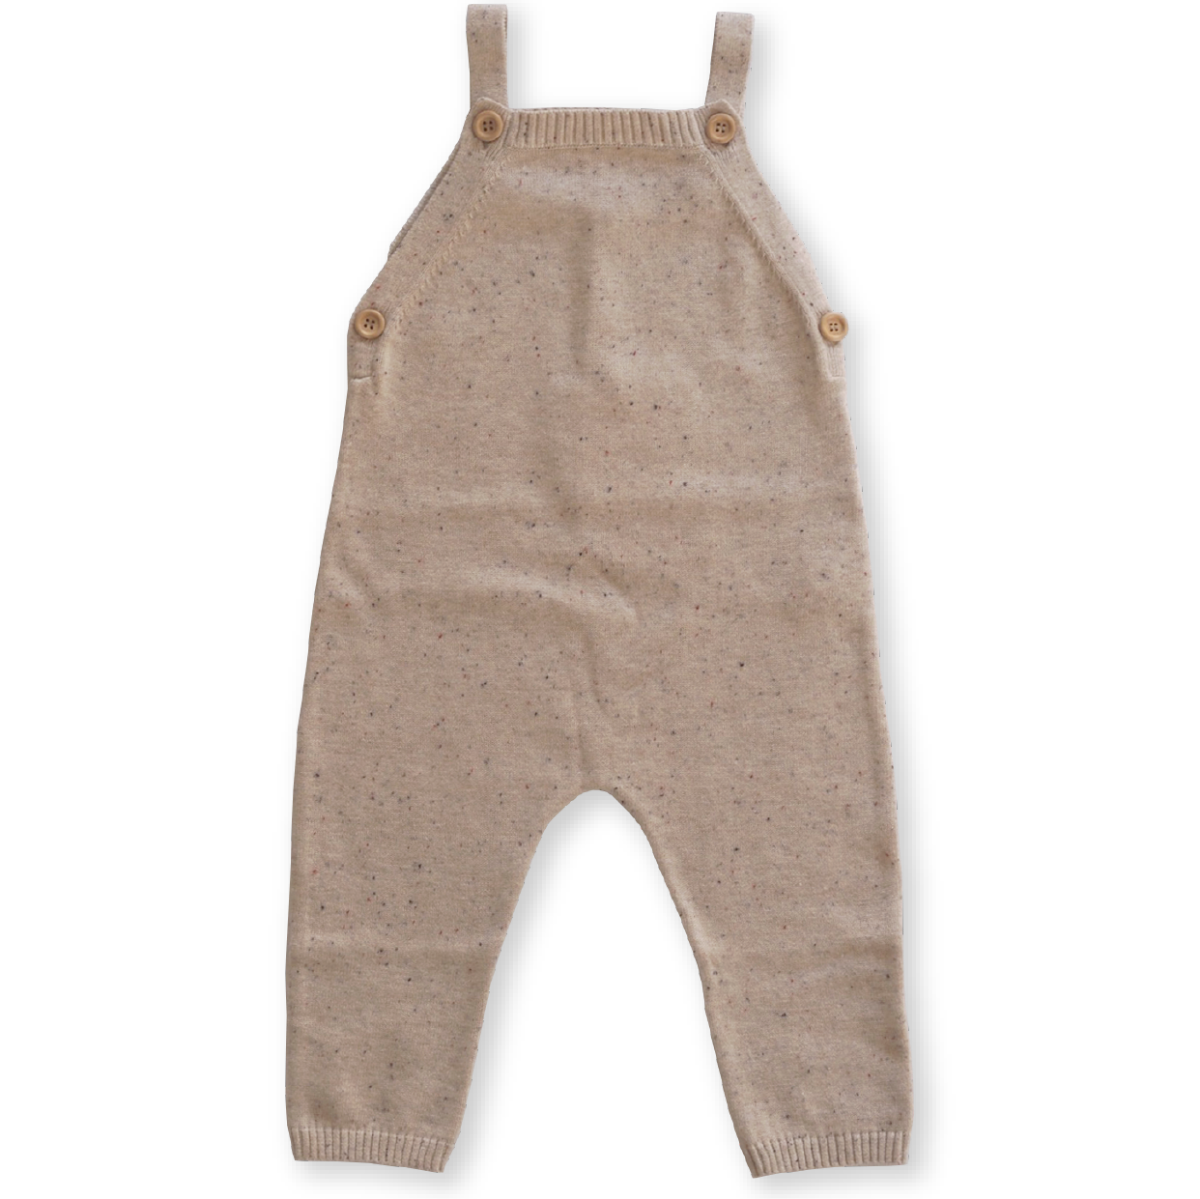 US stockist of Grown Clothing's organic cotton, gender neutral speckled overalls in fawn. Features adjustable straps and wooden button on the sides and straps.